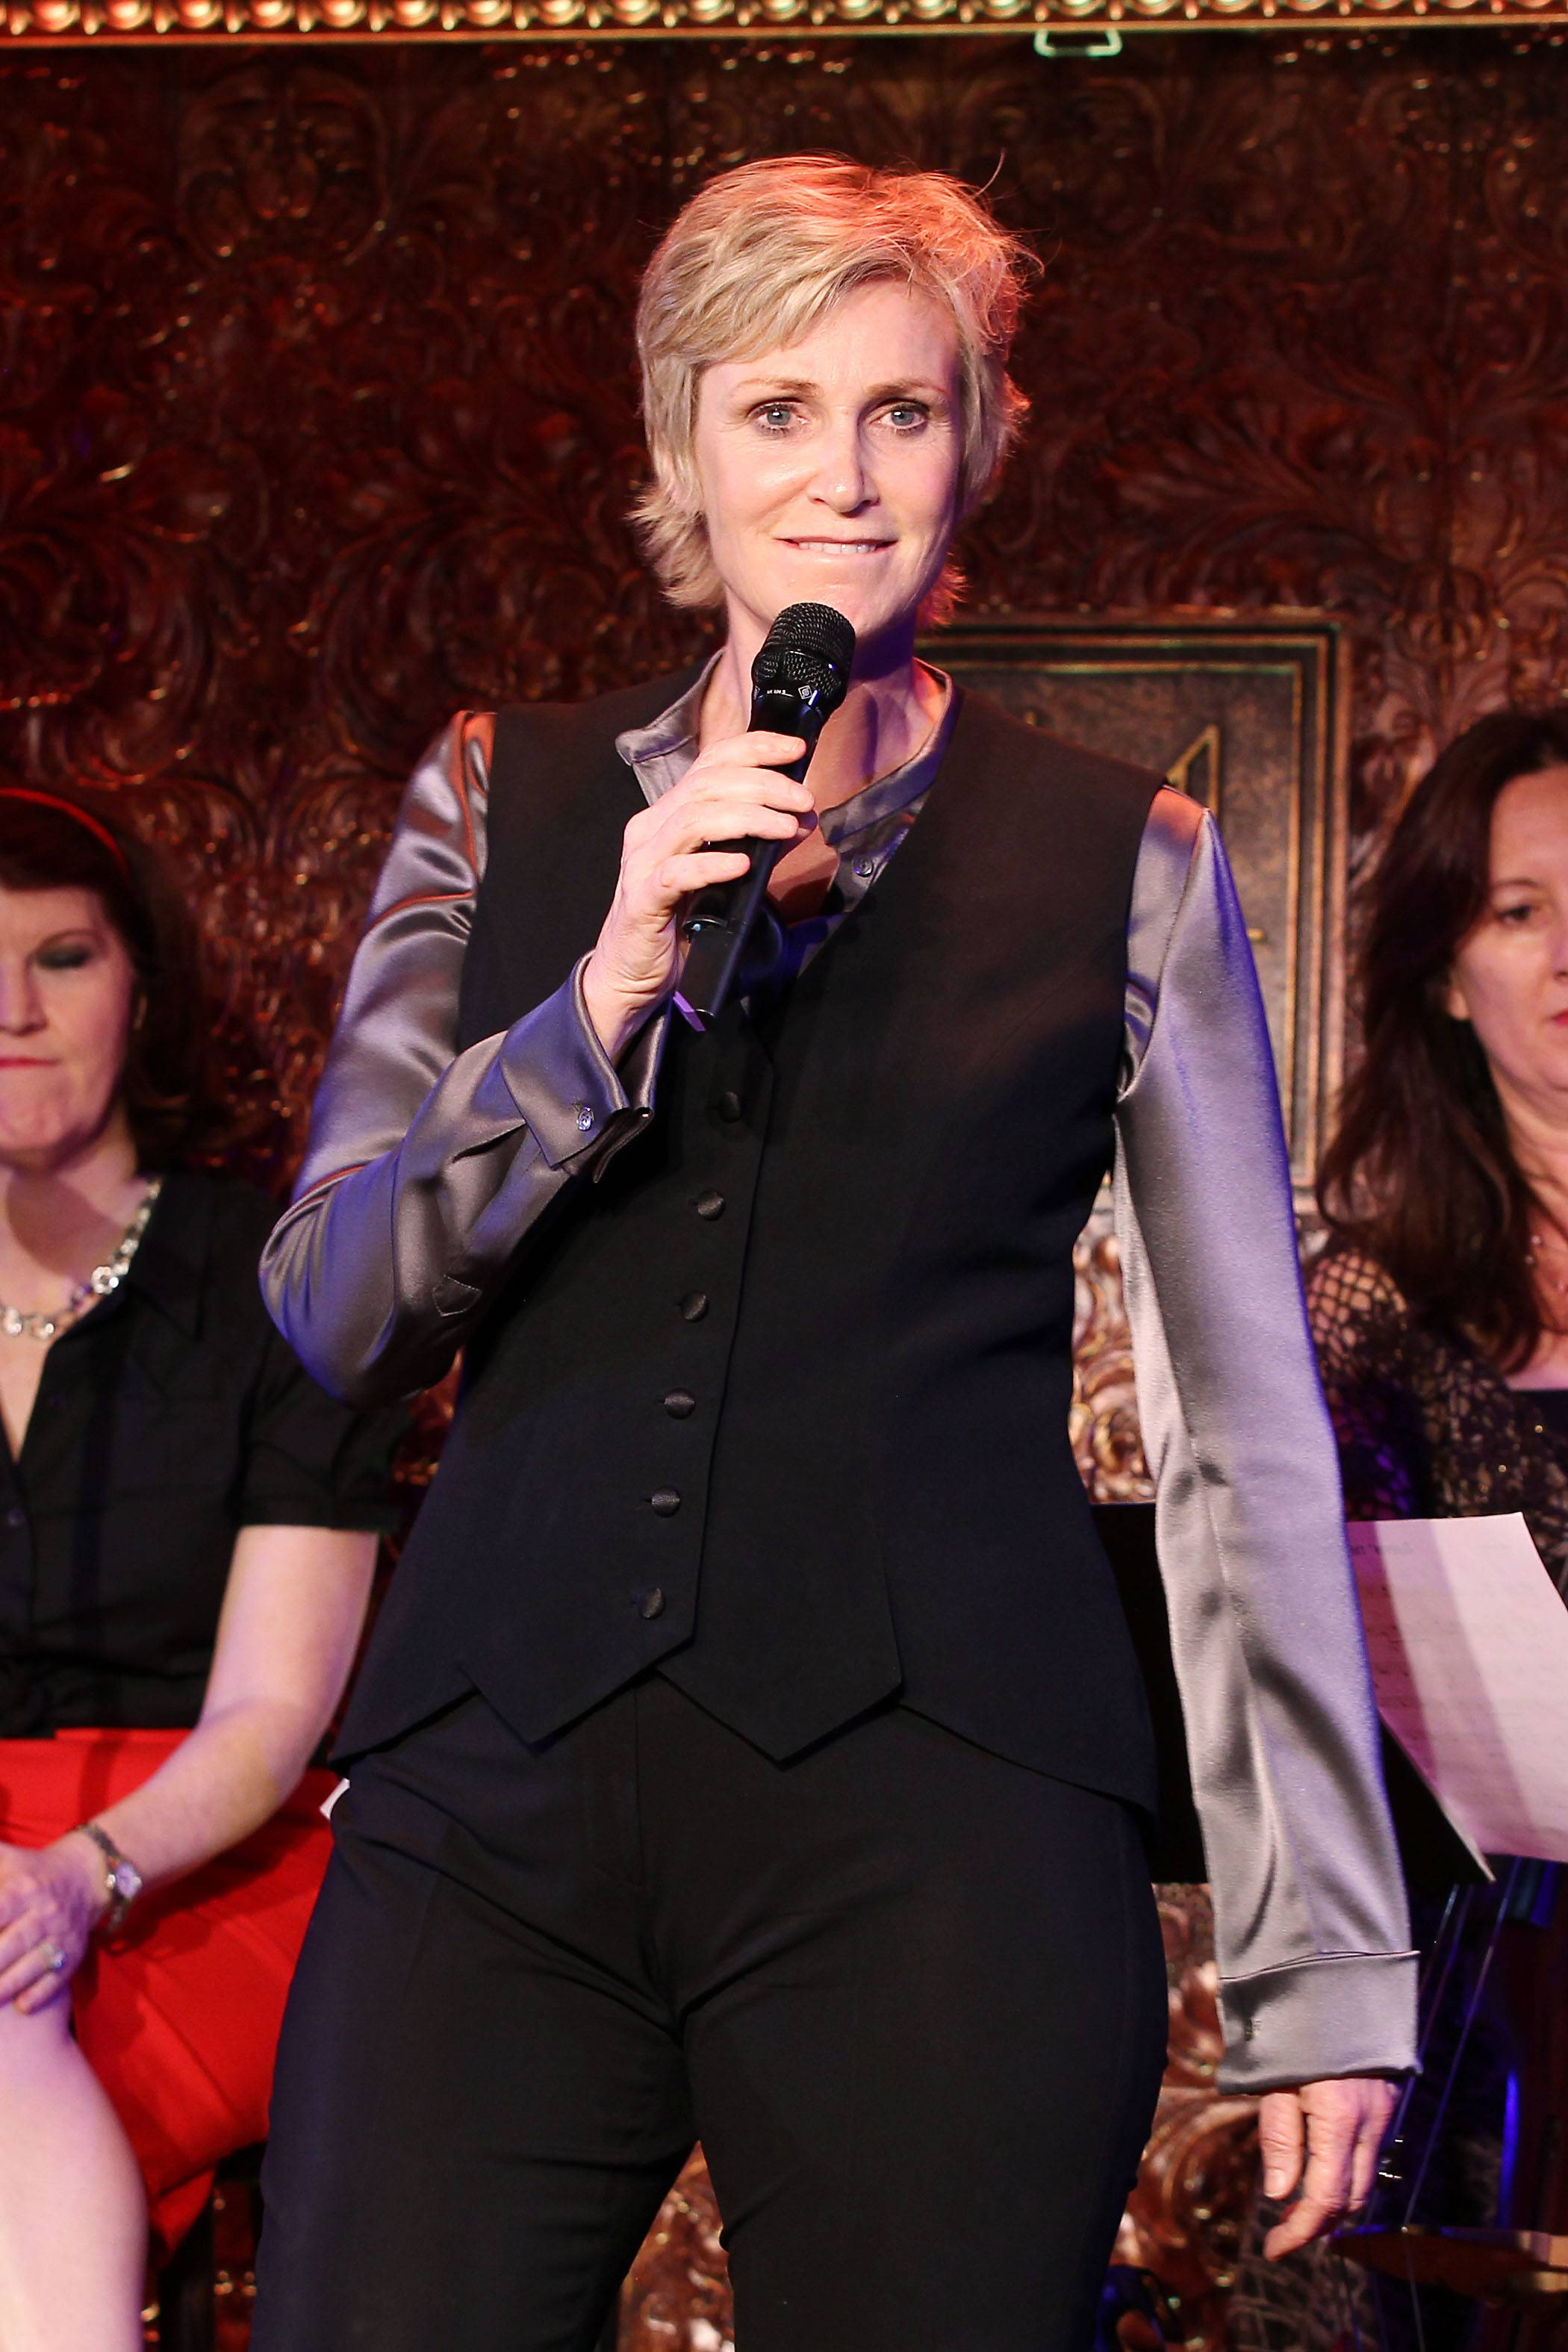 Actor Jane Lynch performs for the press before her concert debut at 54 Below in New York on Wednesday.